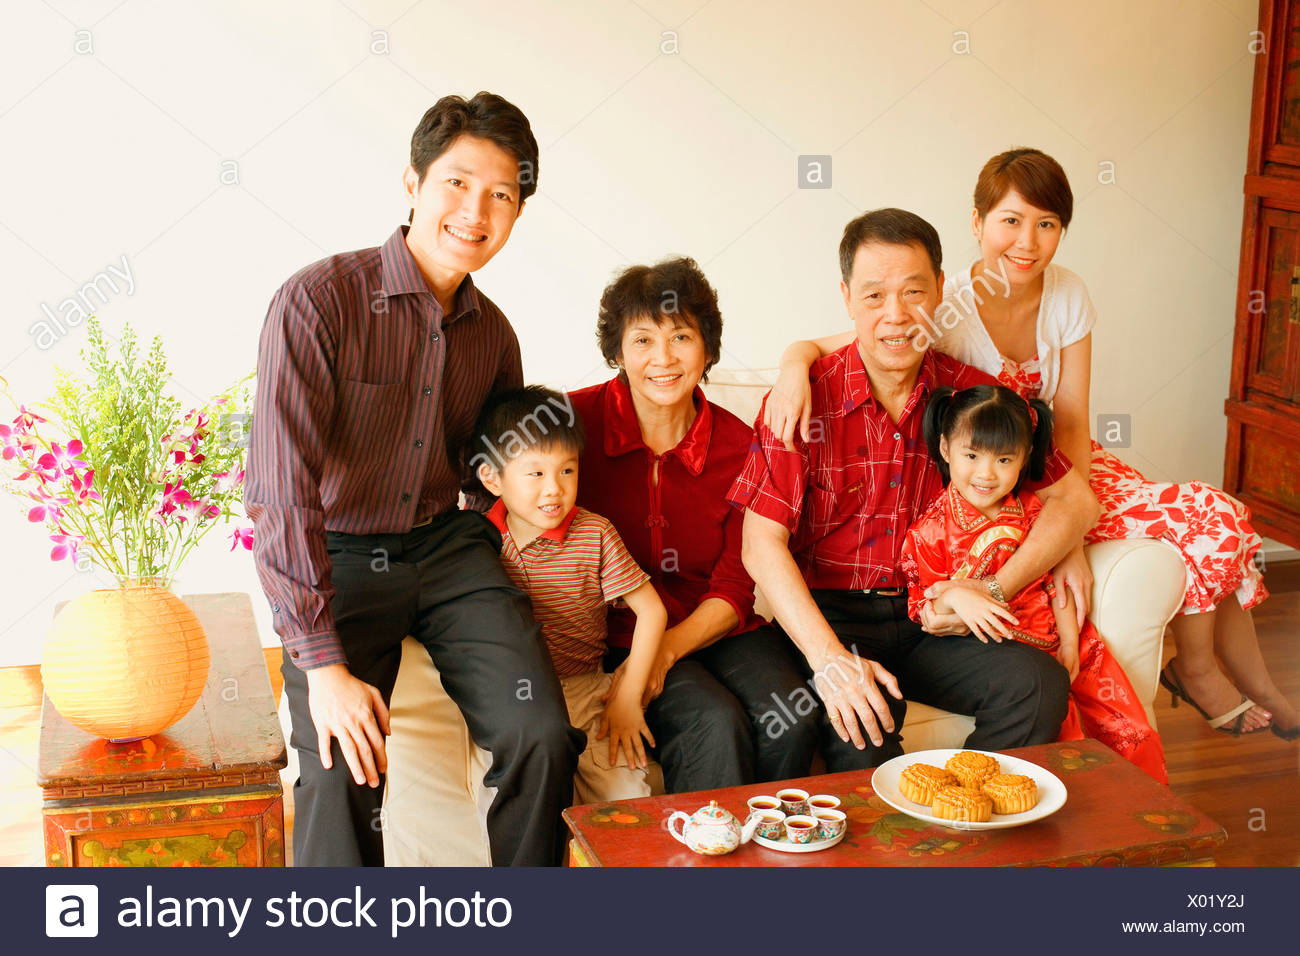 Portrait of a family smiling Stock Photo